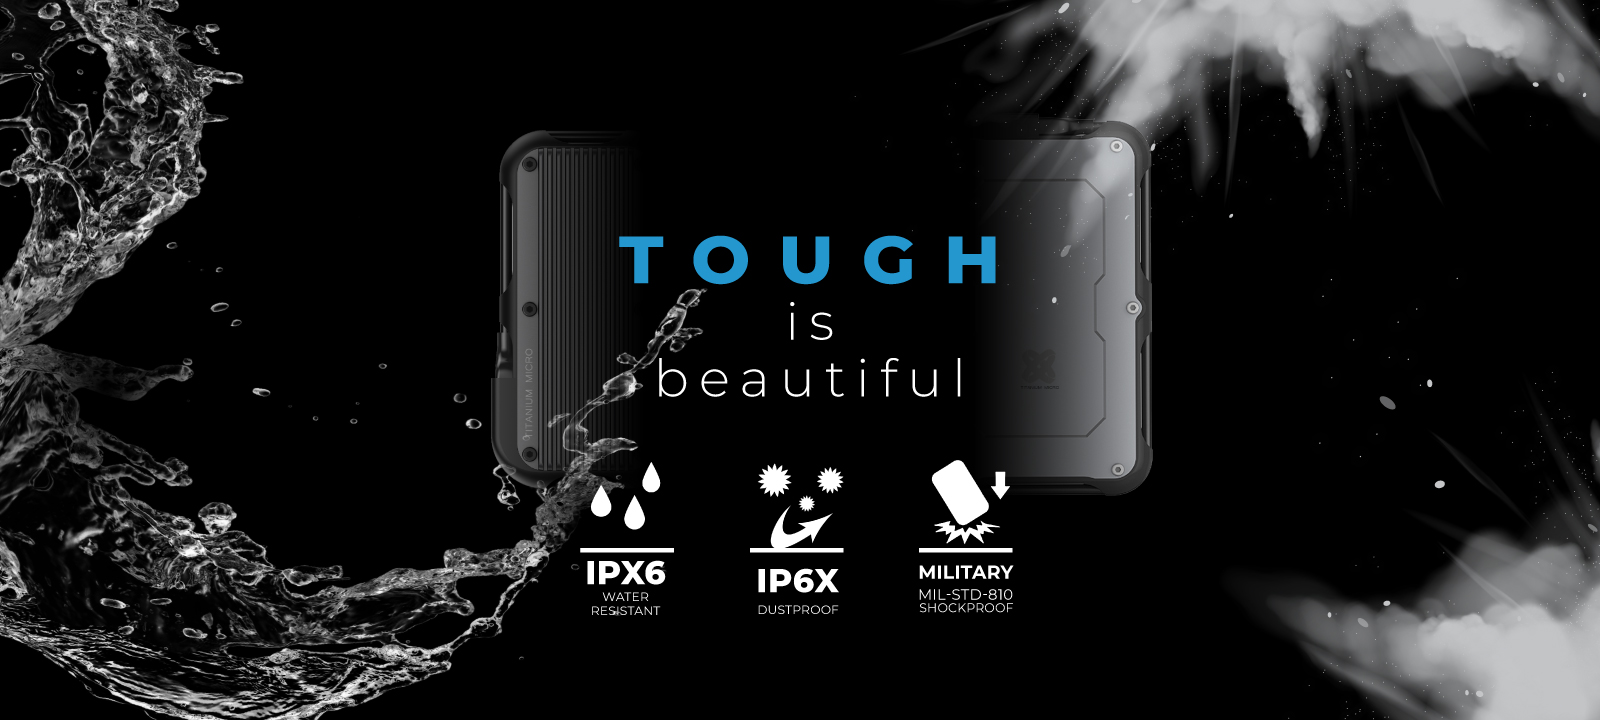 Titanium micro portable external ssd drive rugged tough water dust shock drop proof